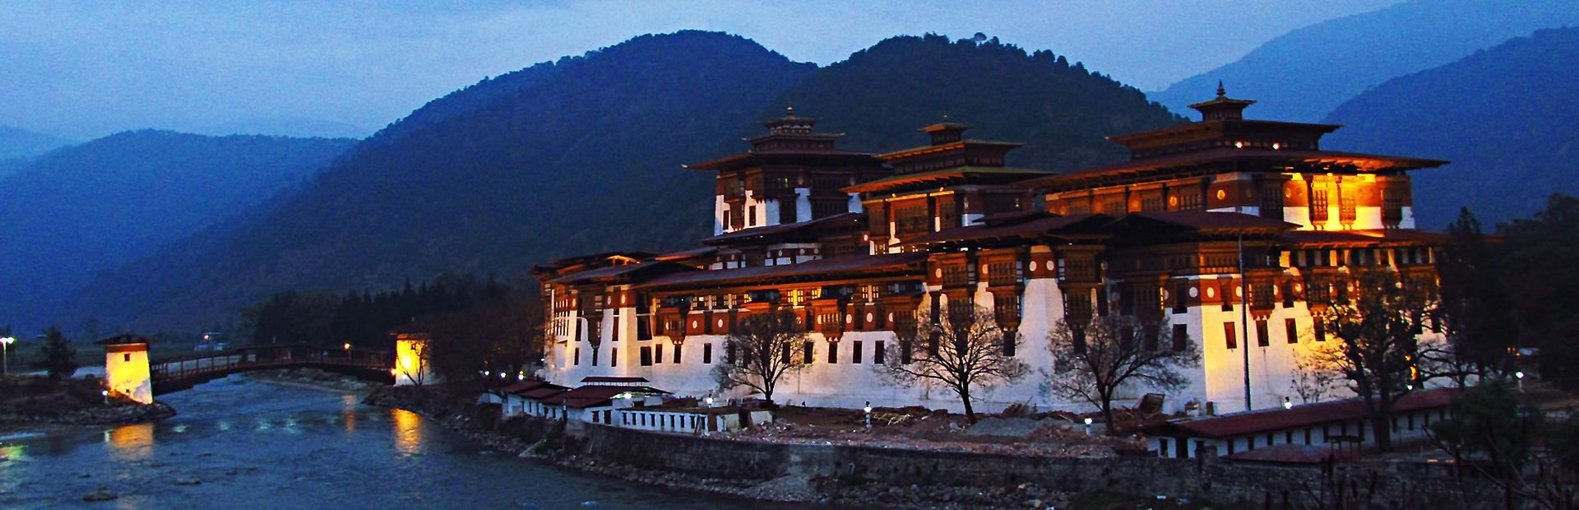 Bhutan - Land of the Thunder Dragon! - Tour